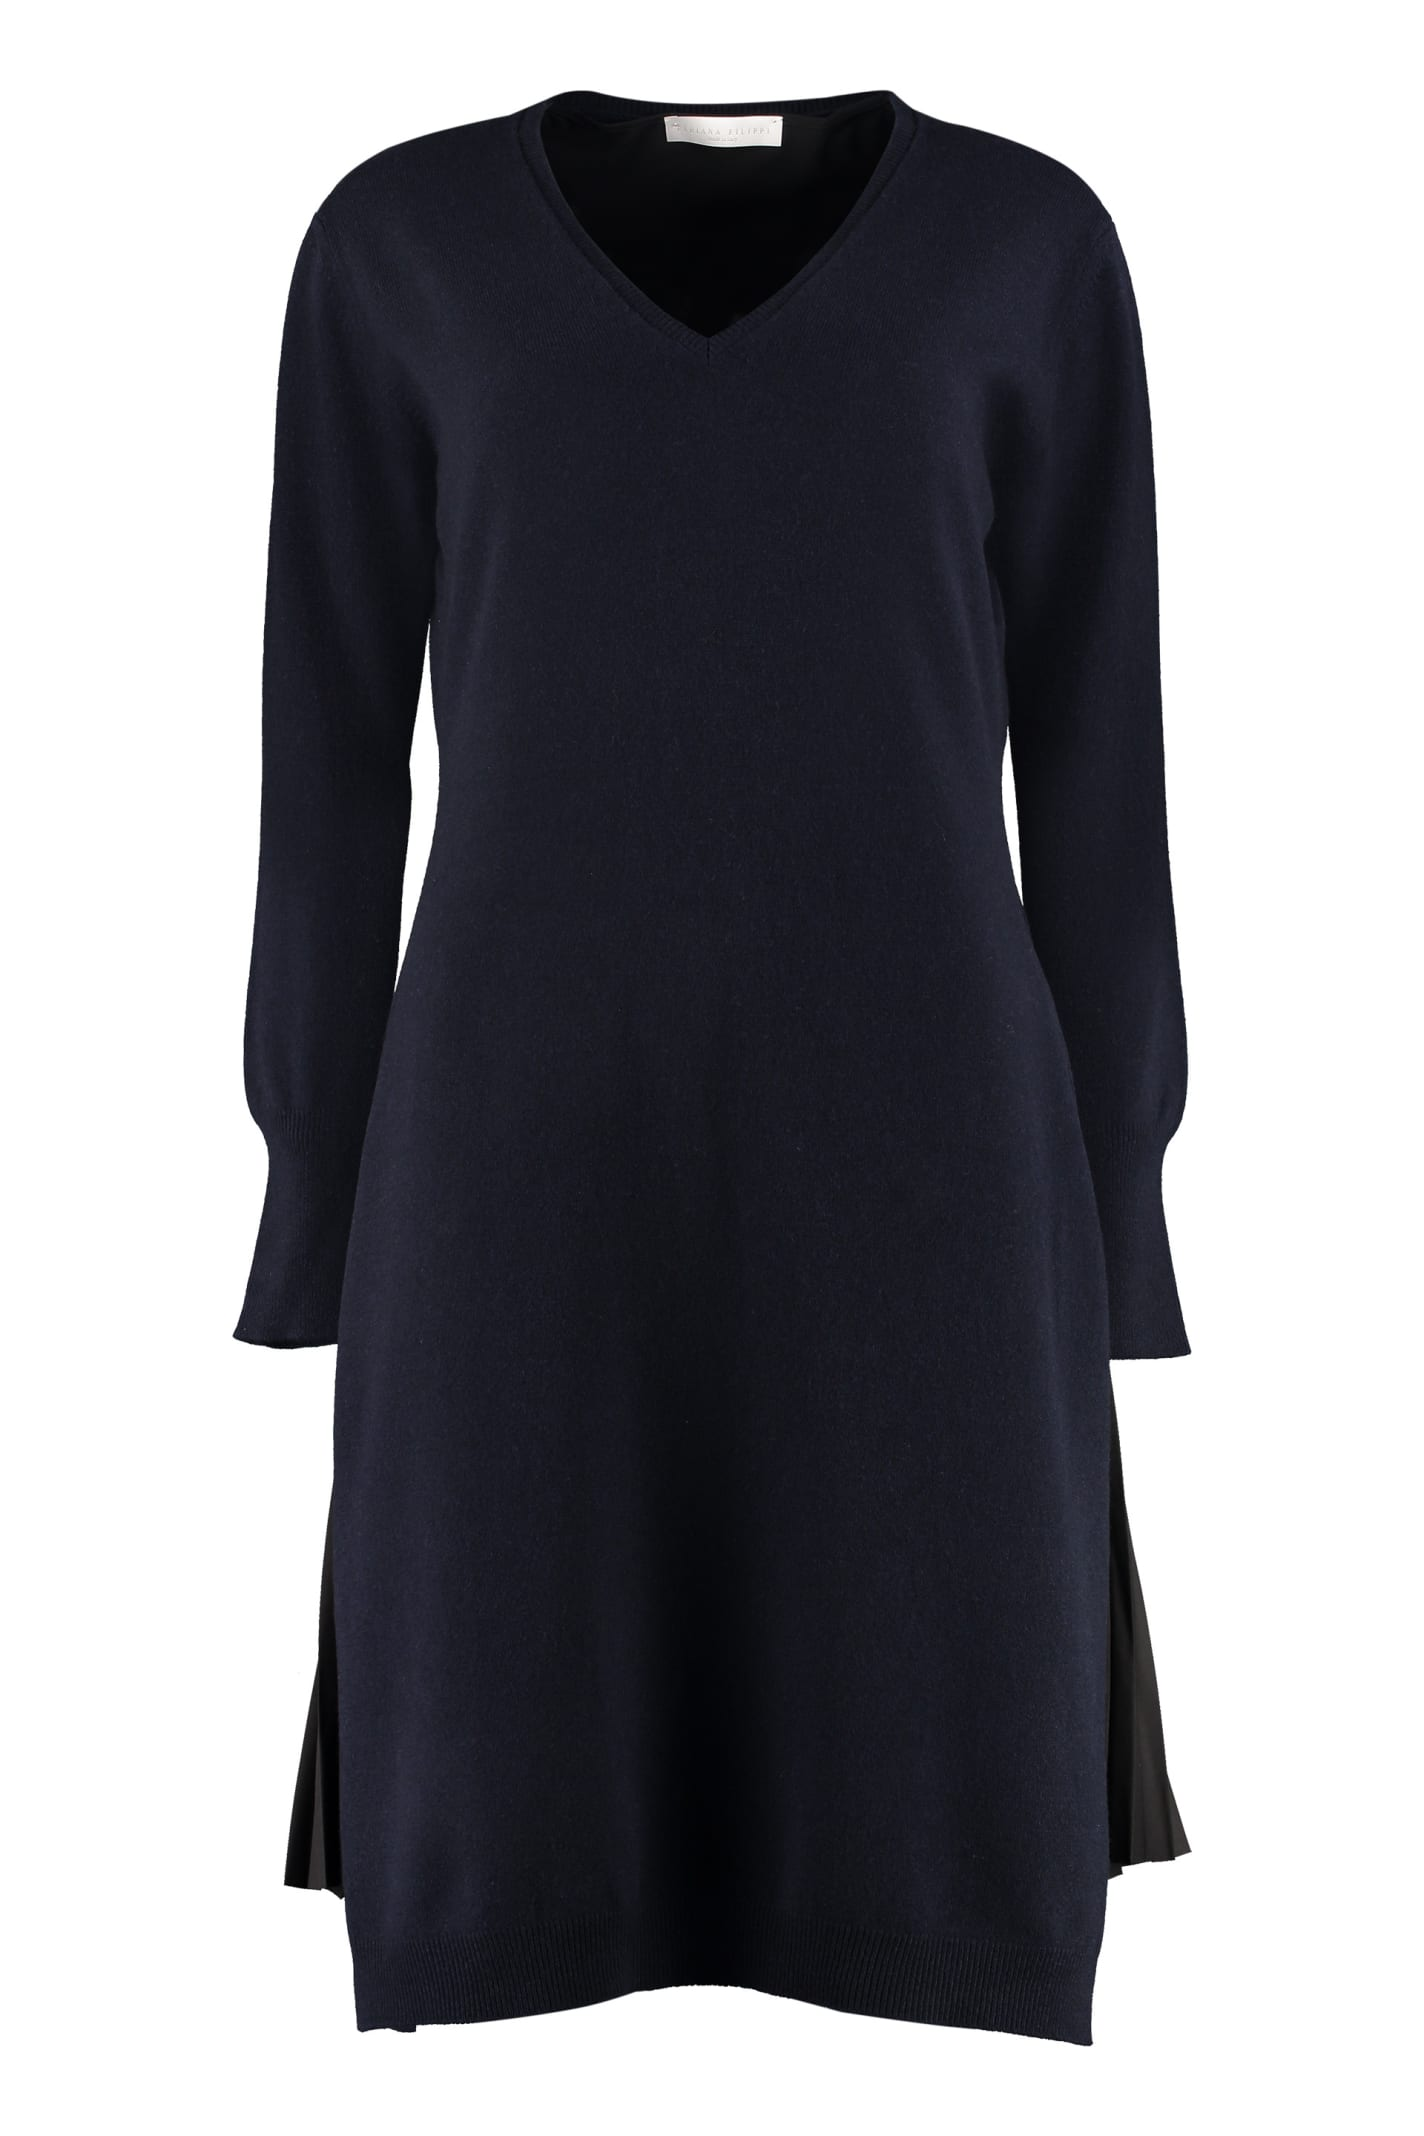 Fabiana Filippi Wool Blend Sweater Dress